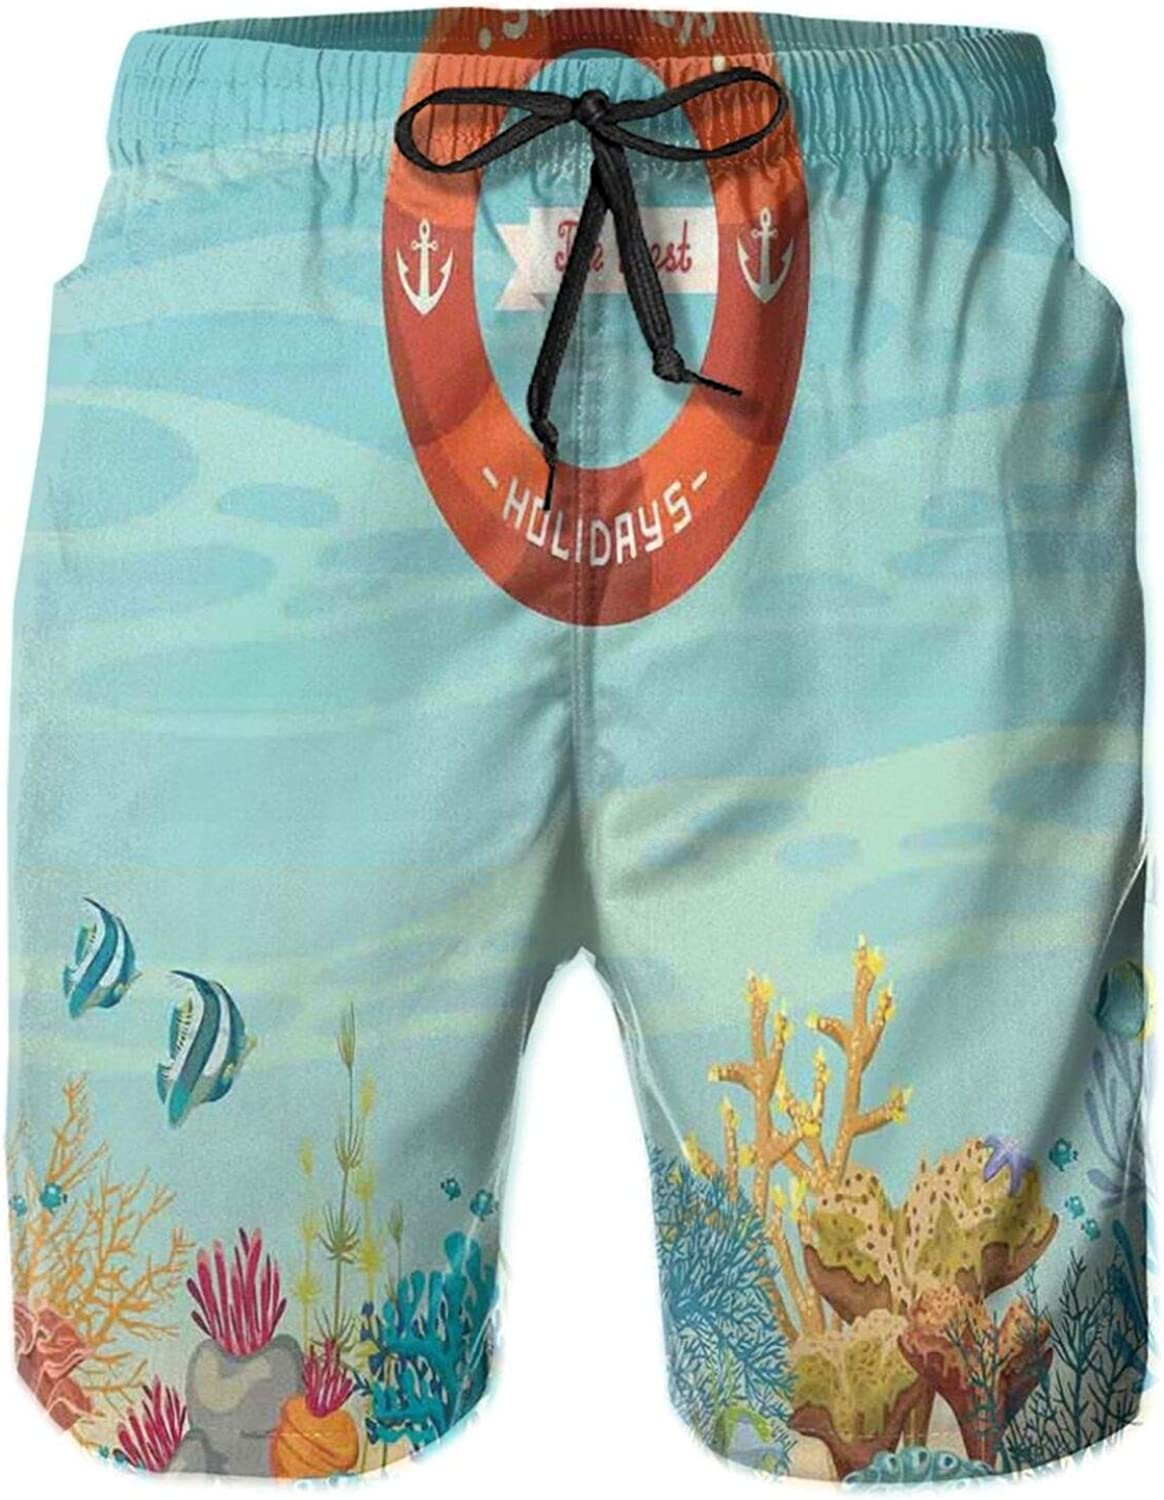 Lifebuoy Over Coral Reef Sea Tropical Ocean Bubbles Beach Mystic Subaquatic Swimming Trunks for Men Beach Shorts Casual Style,L